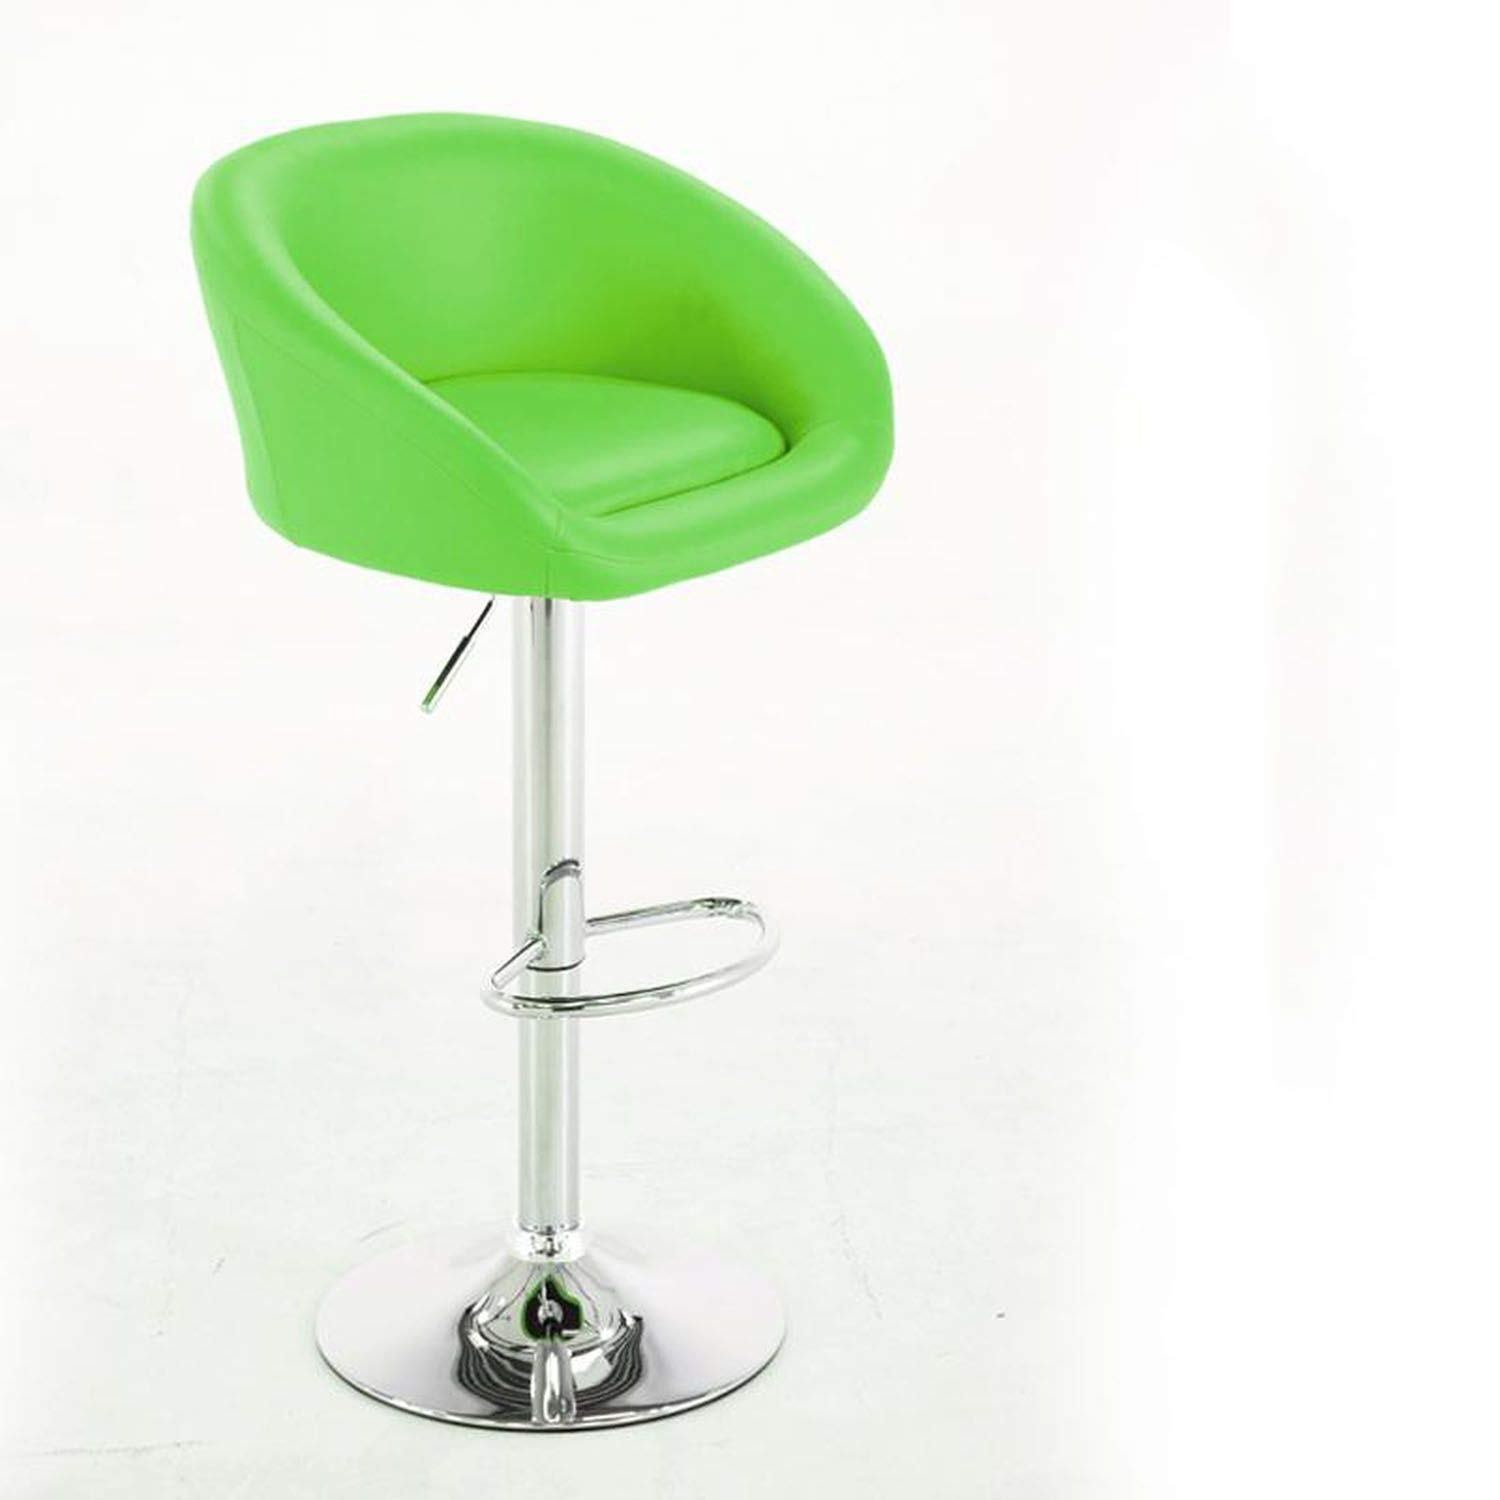 Style 17 one size Bar Chair Lift Chair Home Swivel Chair Nail Beauty Stool Back Makeup Chair Modern Minimalist High Stool,Style 17